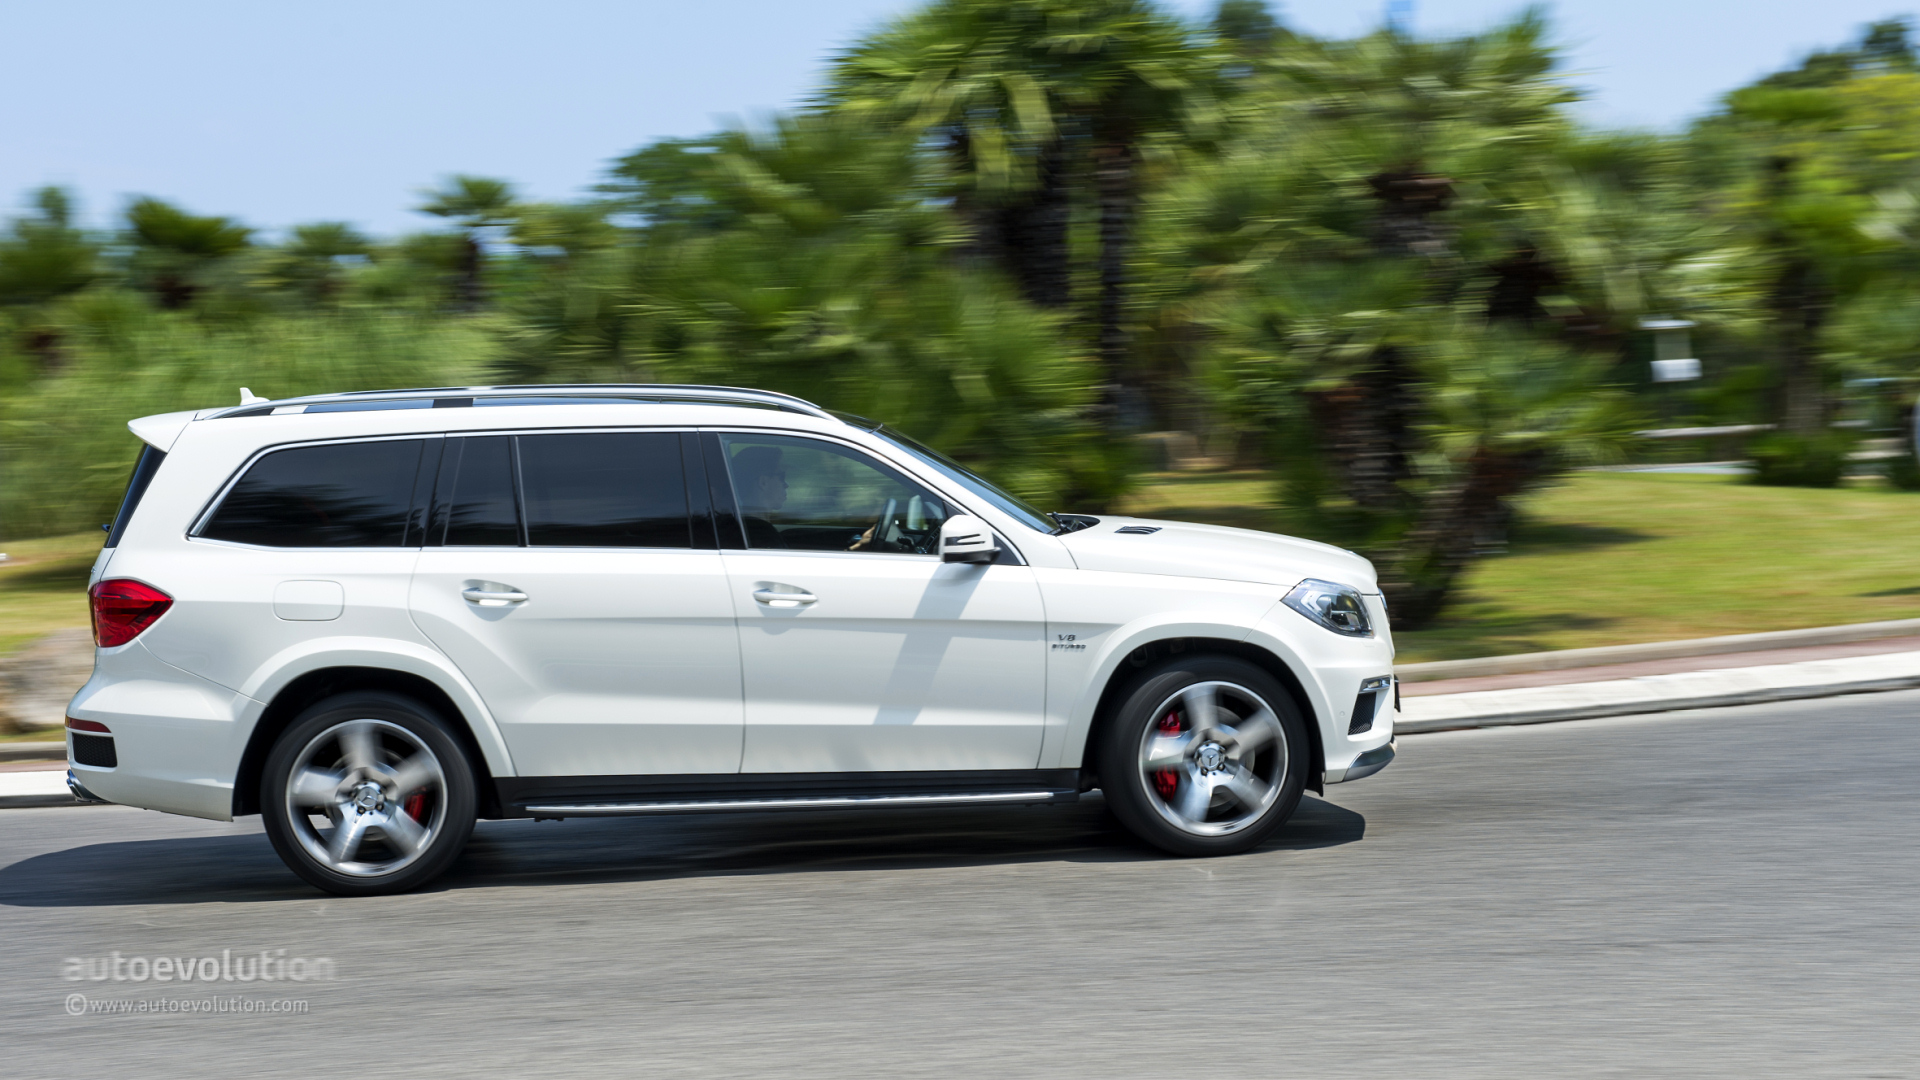 Mercedes benz gl63 amg review autoevolution for Mercedes benz gls amg